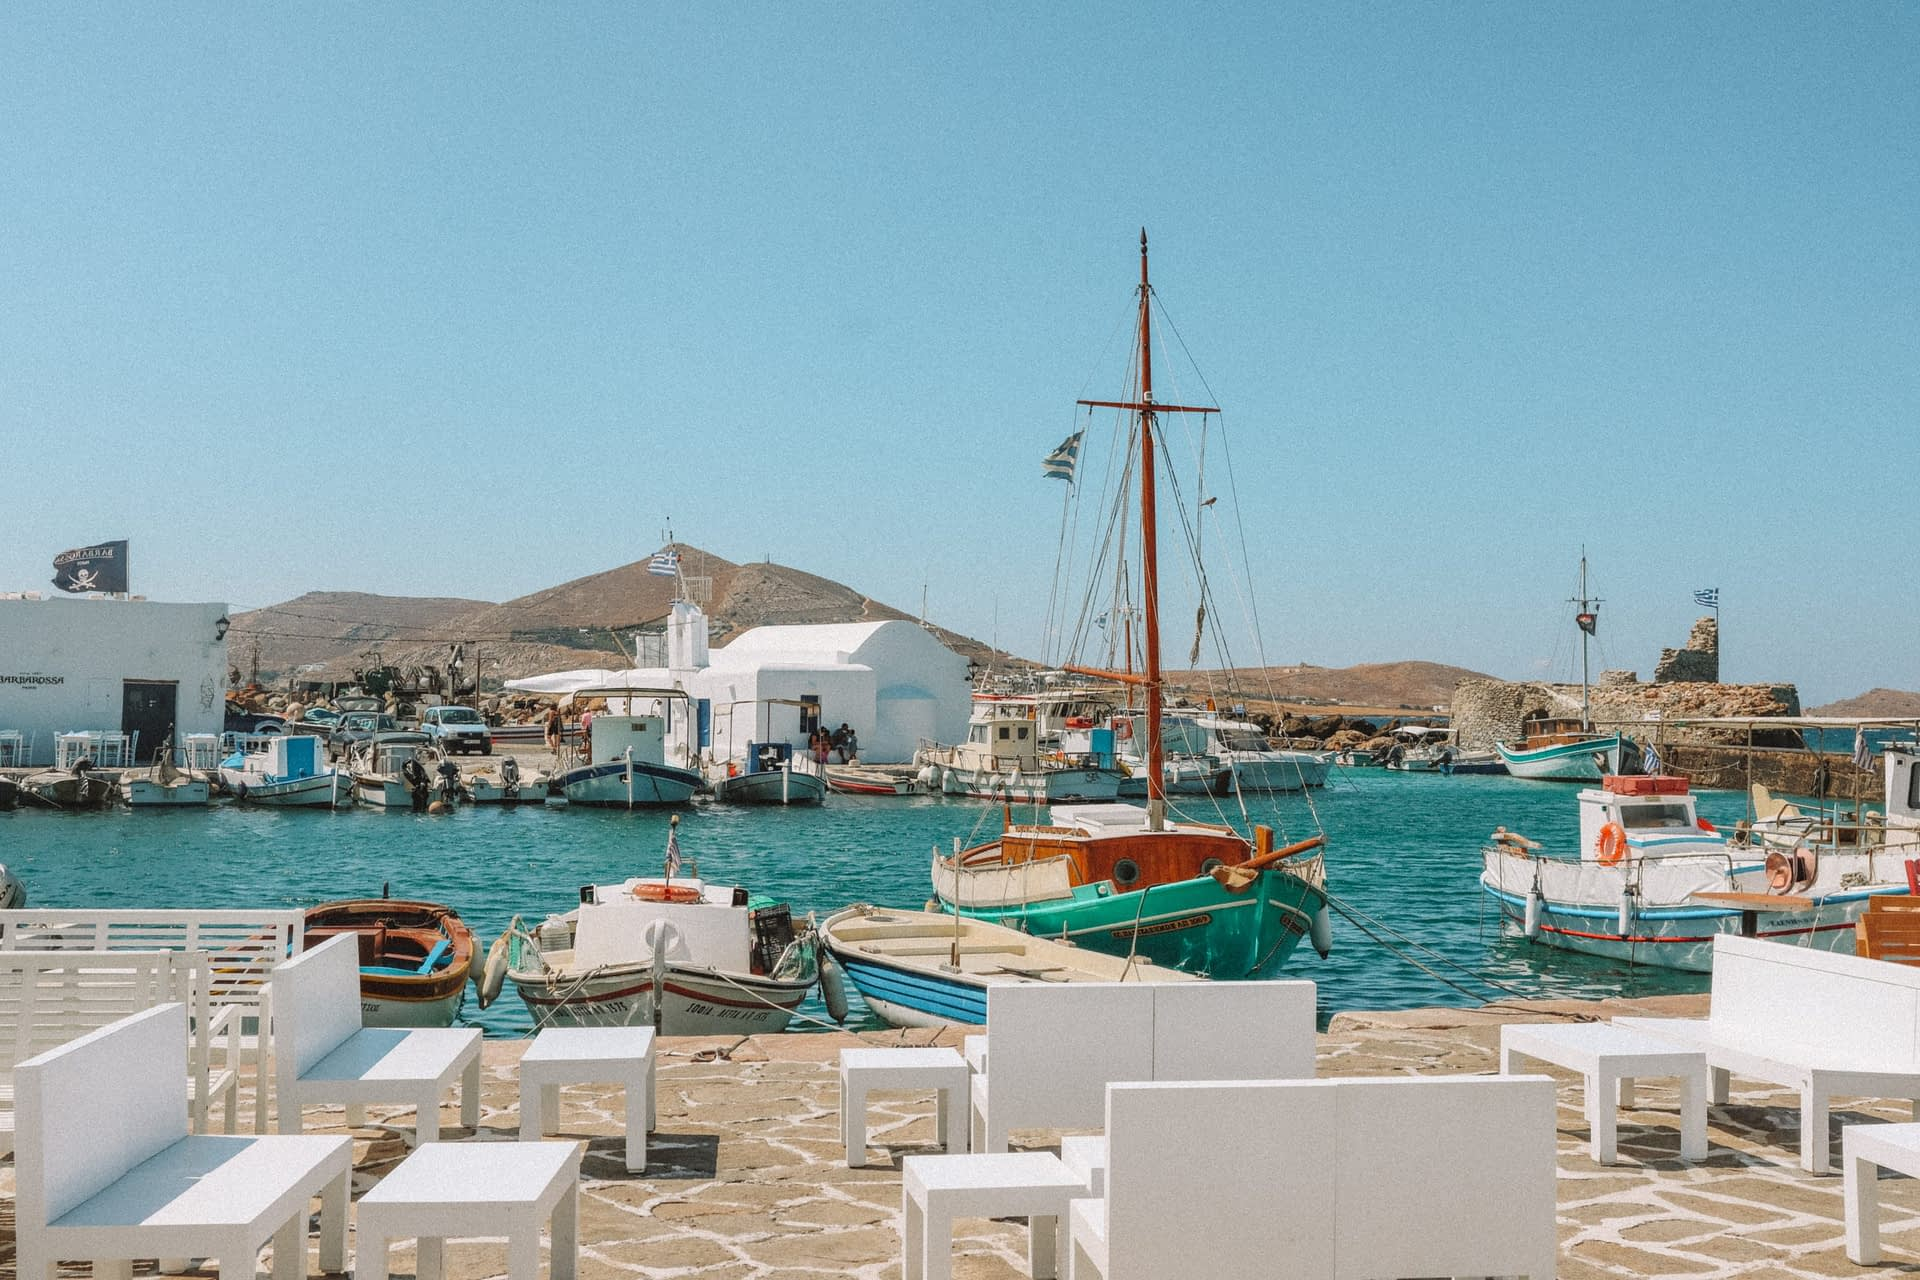 Docked boats in turquoise water at the Naoussa harbour. Things to do in Paros